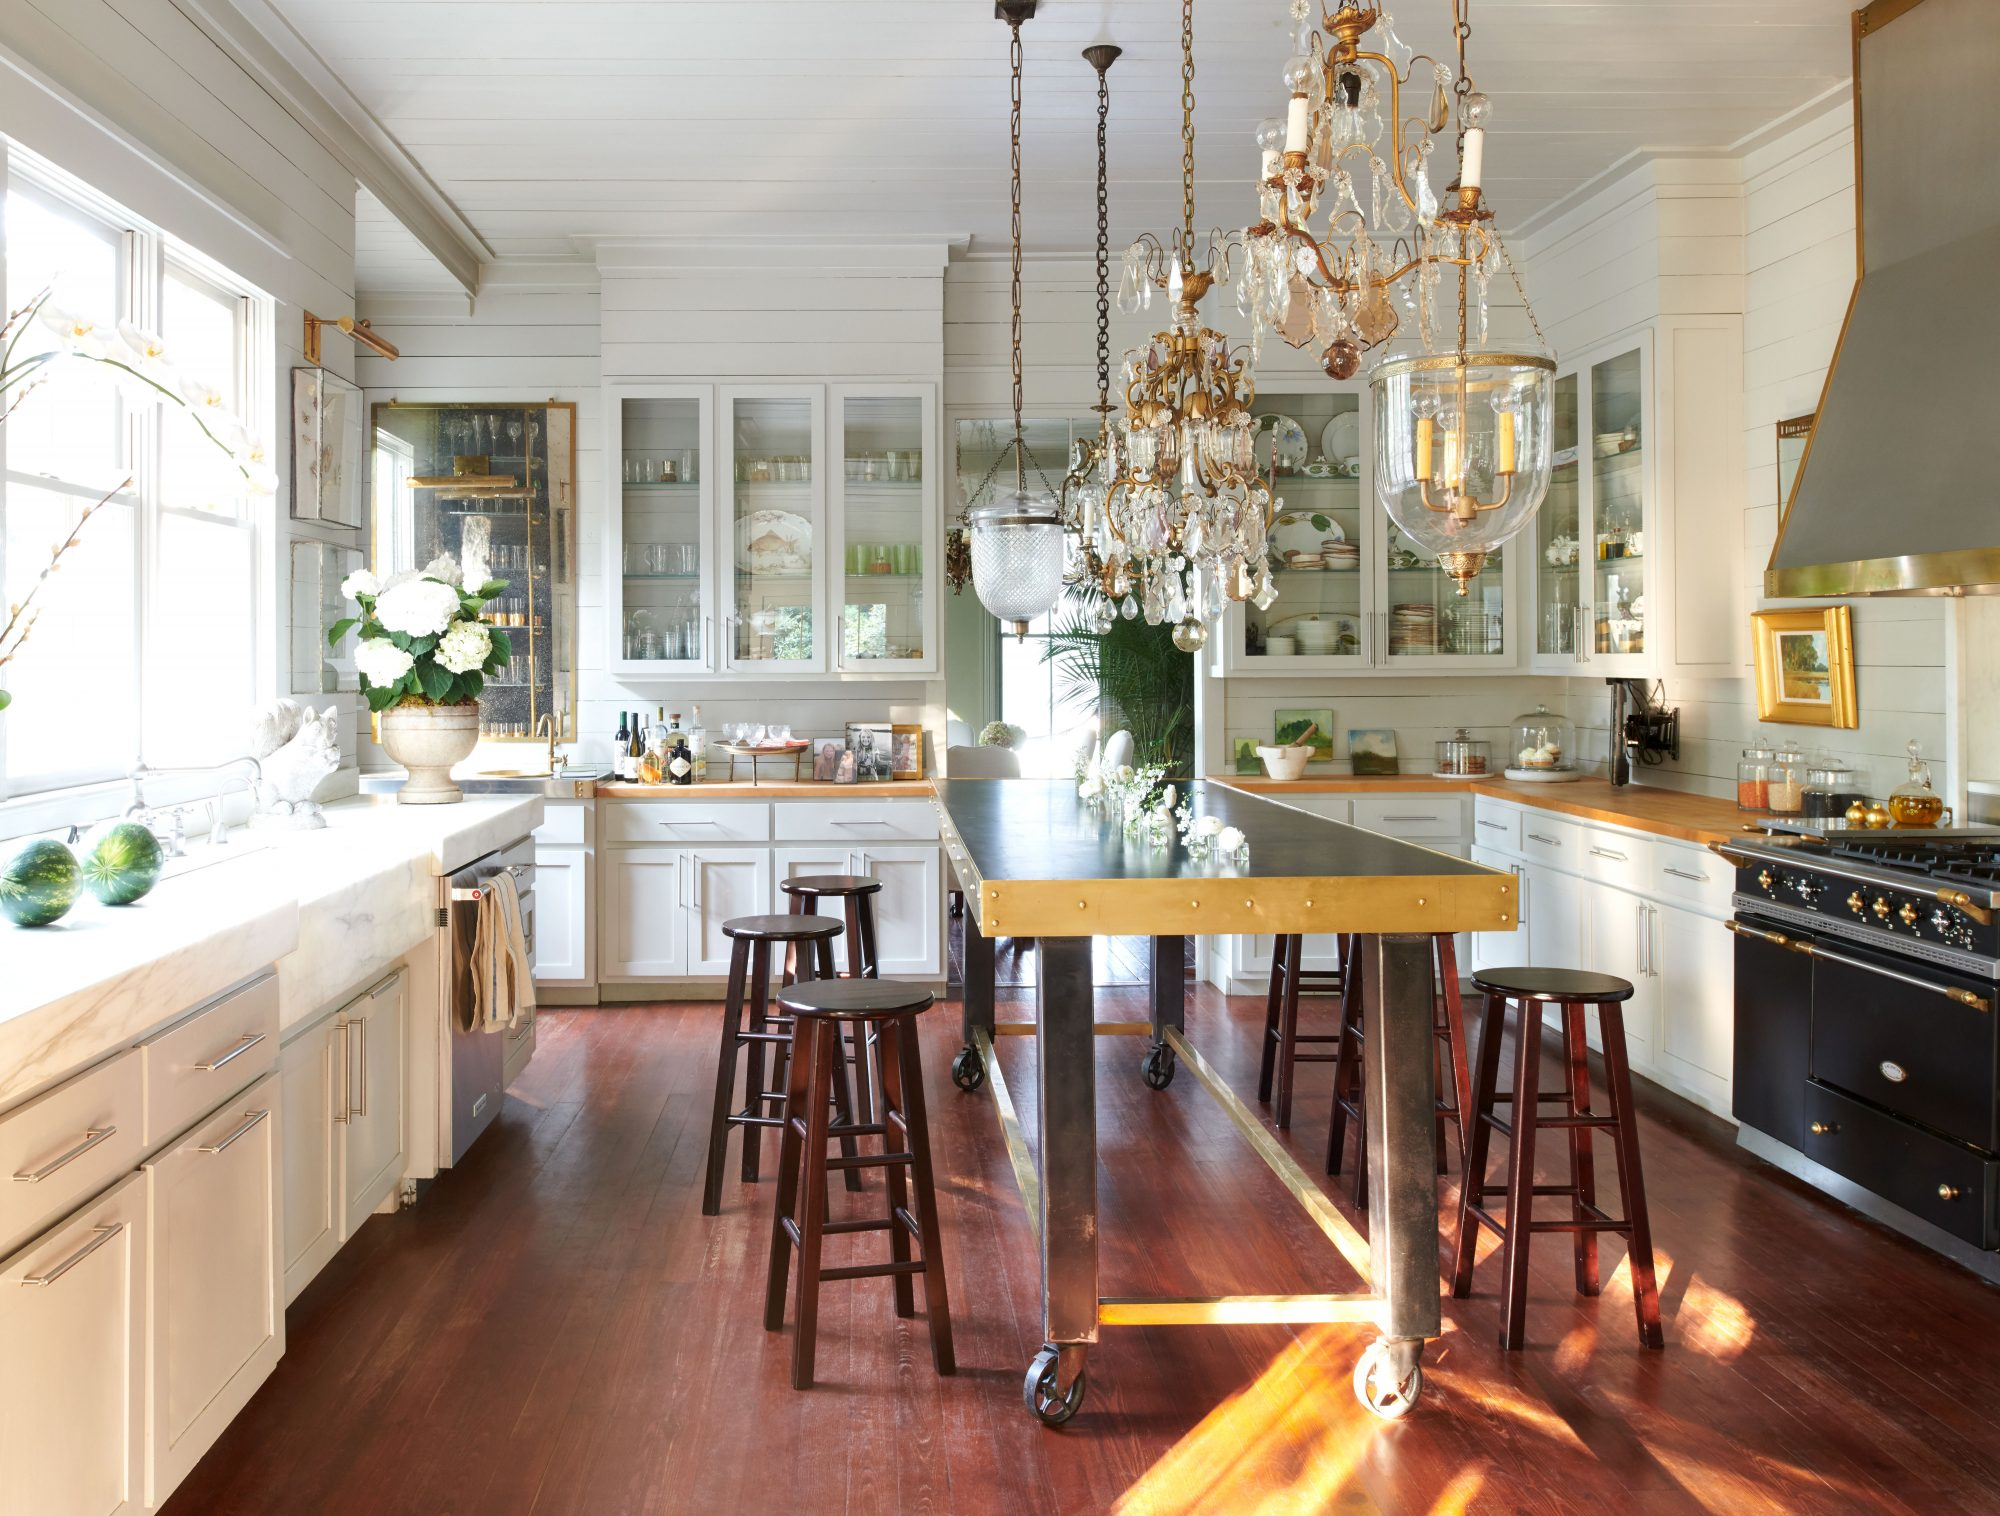 Neutral Kitchen with Butcher Block Island and Mixed Light Fixtures